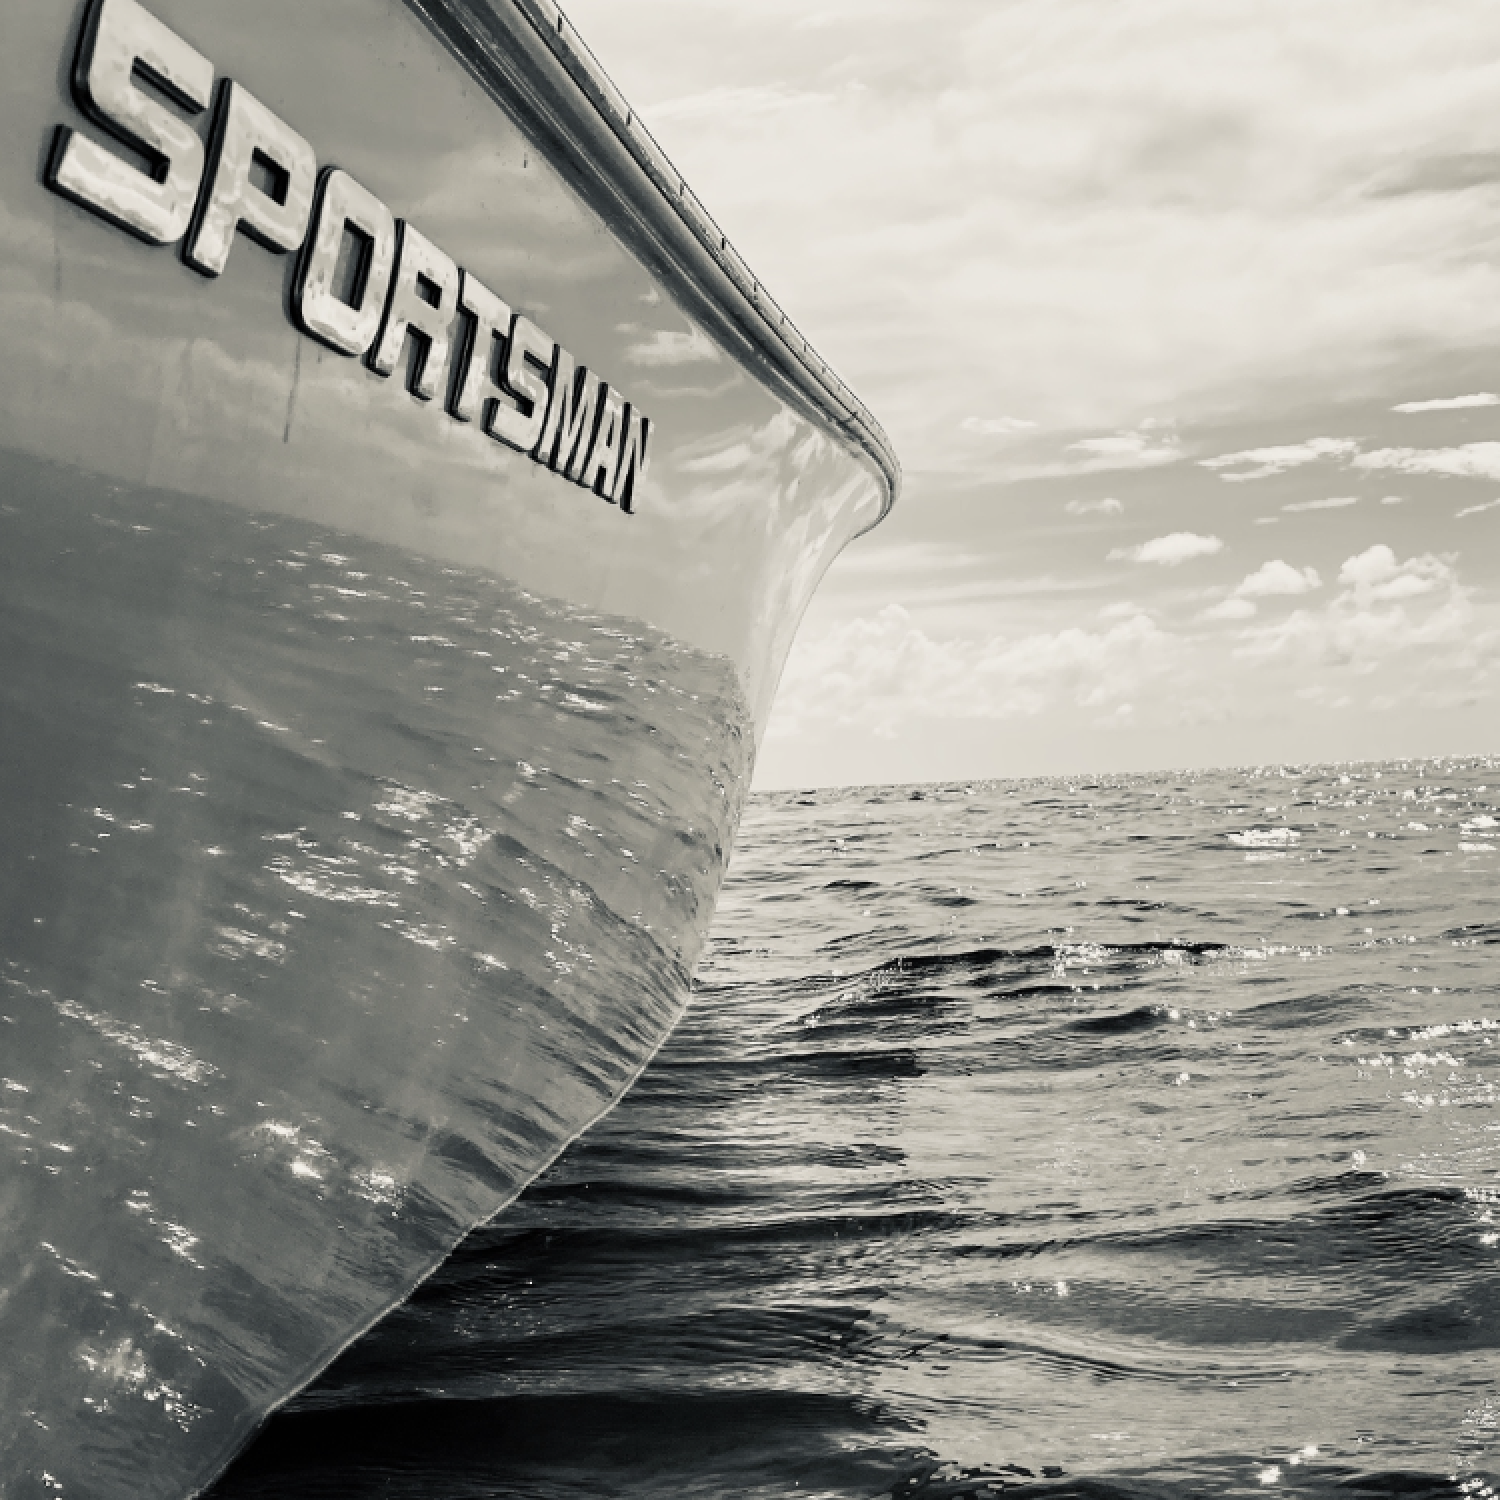 Title: Smooth finish to a long day. - On board their Sportsman Heritage 211 Center Console - Location: Steinhatchee FL. Participating in the Photo Contest #SportsmanSeptember2020